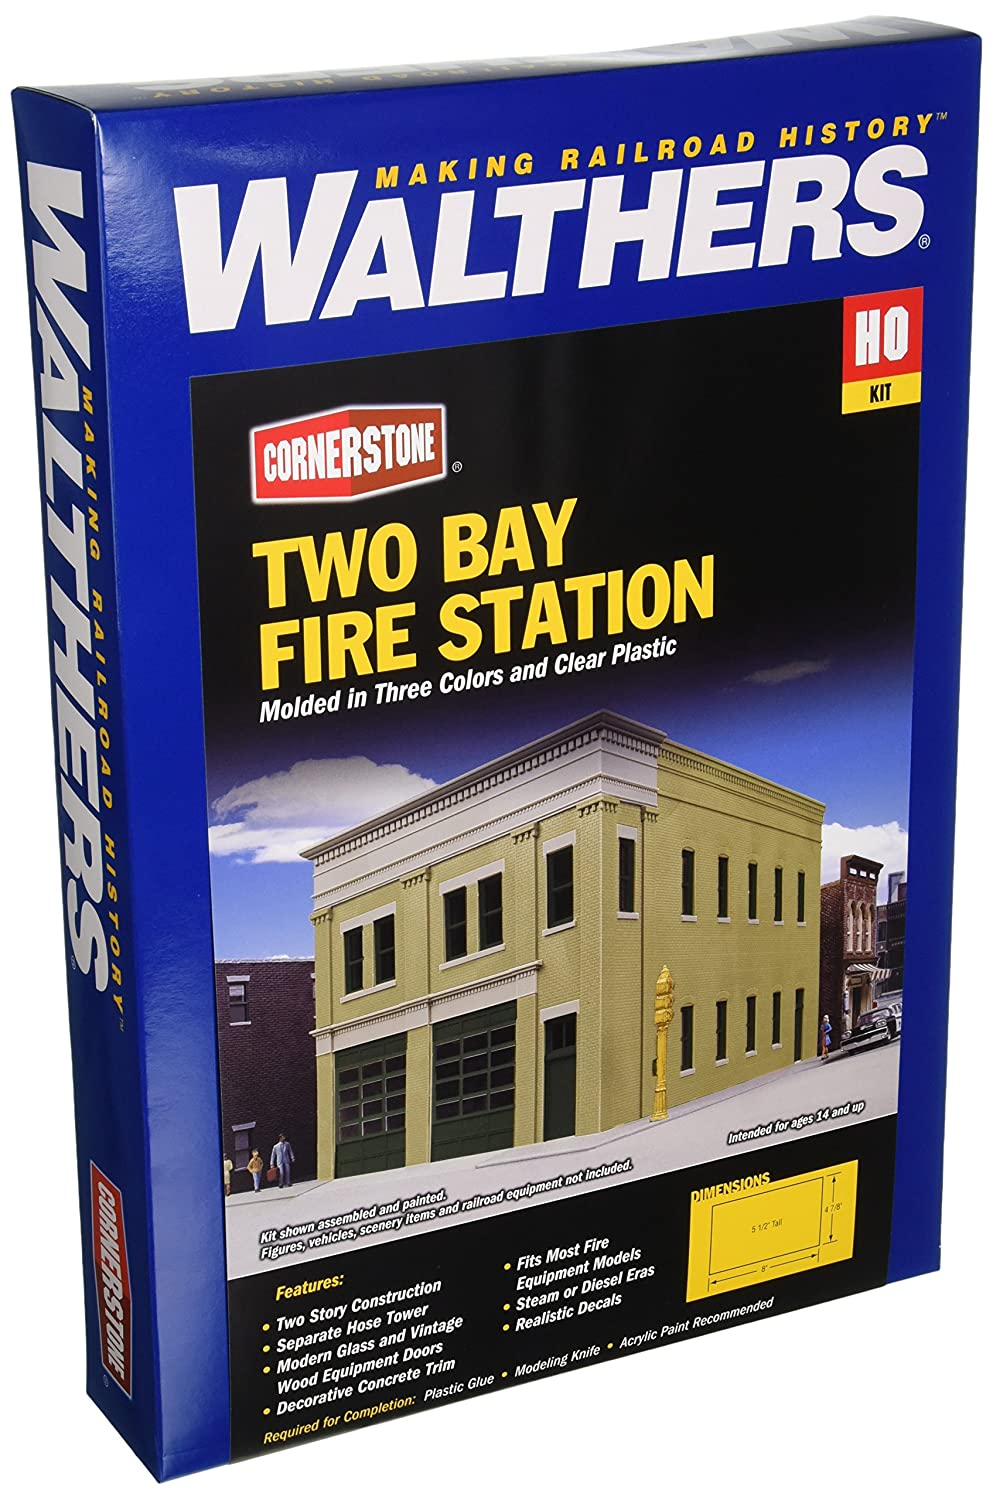 【GINGER掲載商品】 Walthers - 8 Two-Bay HO Fire Station - Kit (Plastic) -- 4-7/8 8 x 4-7/8 x 5-1/2